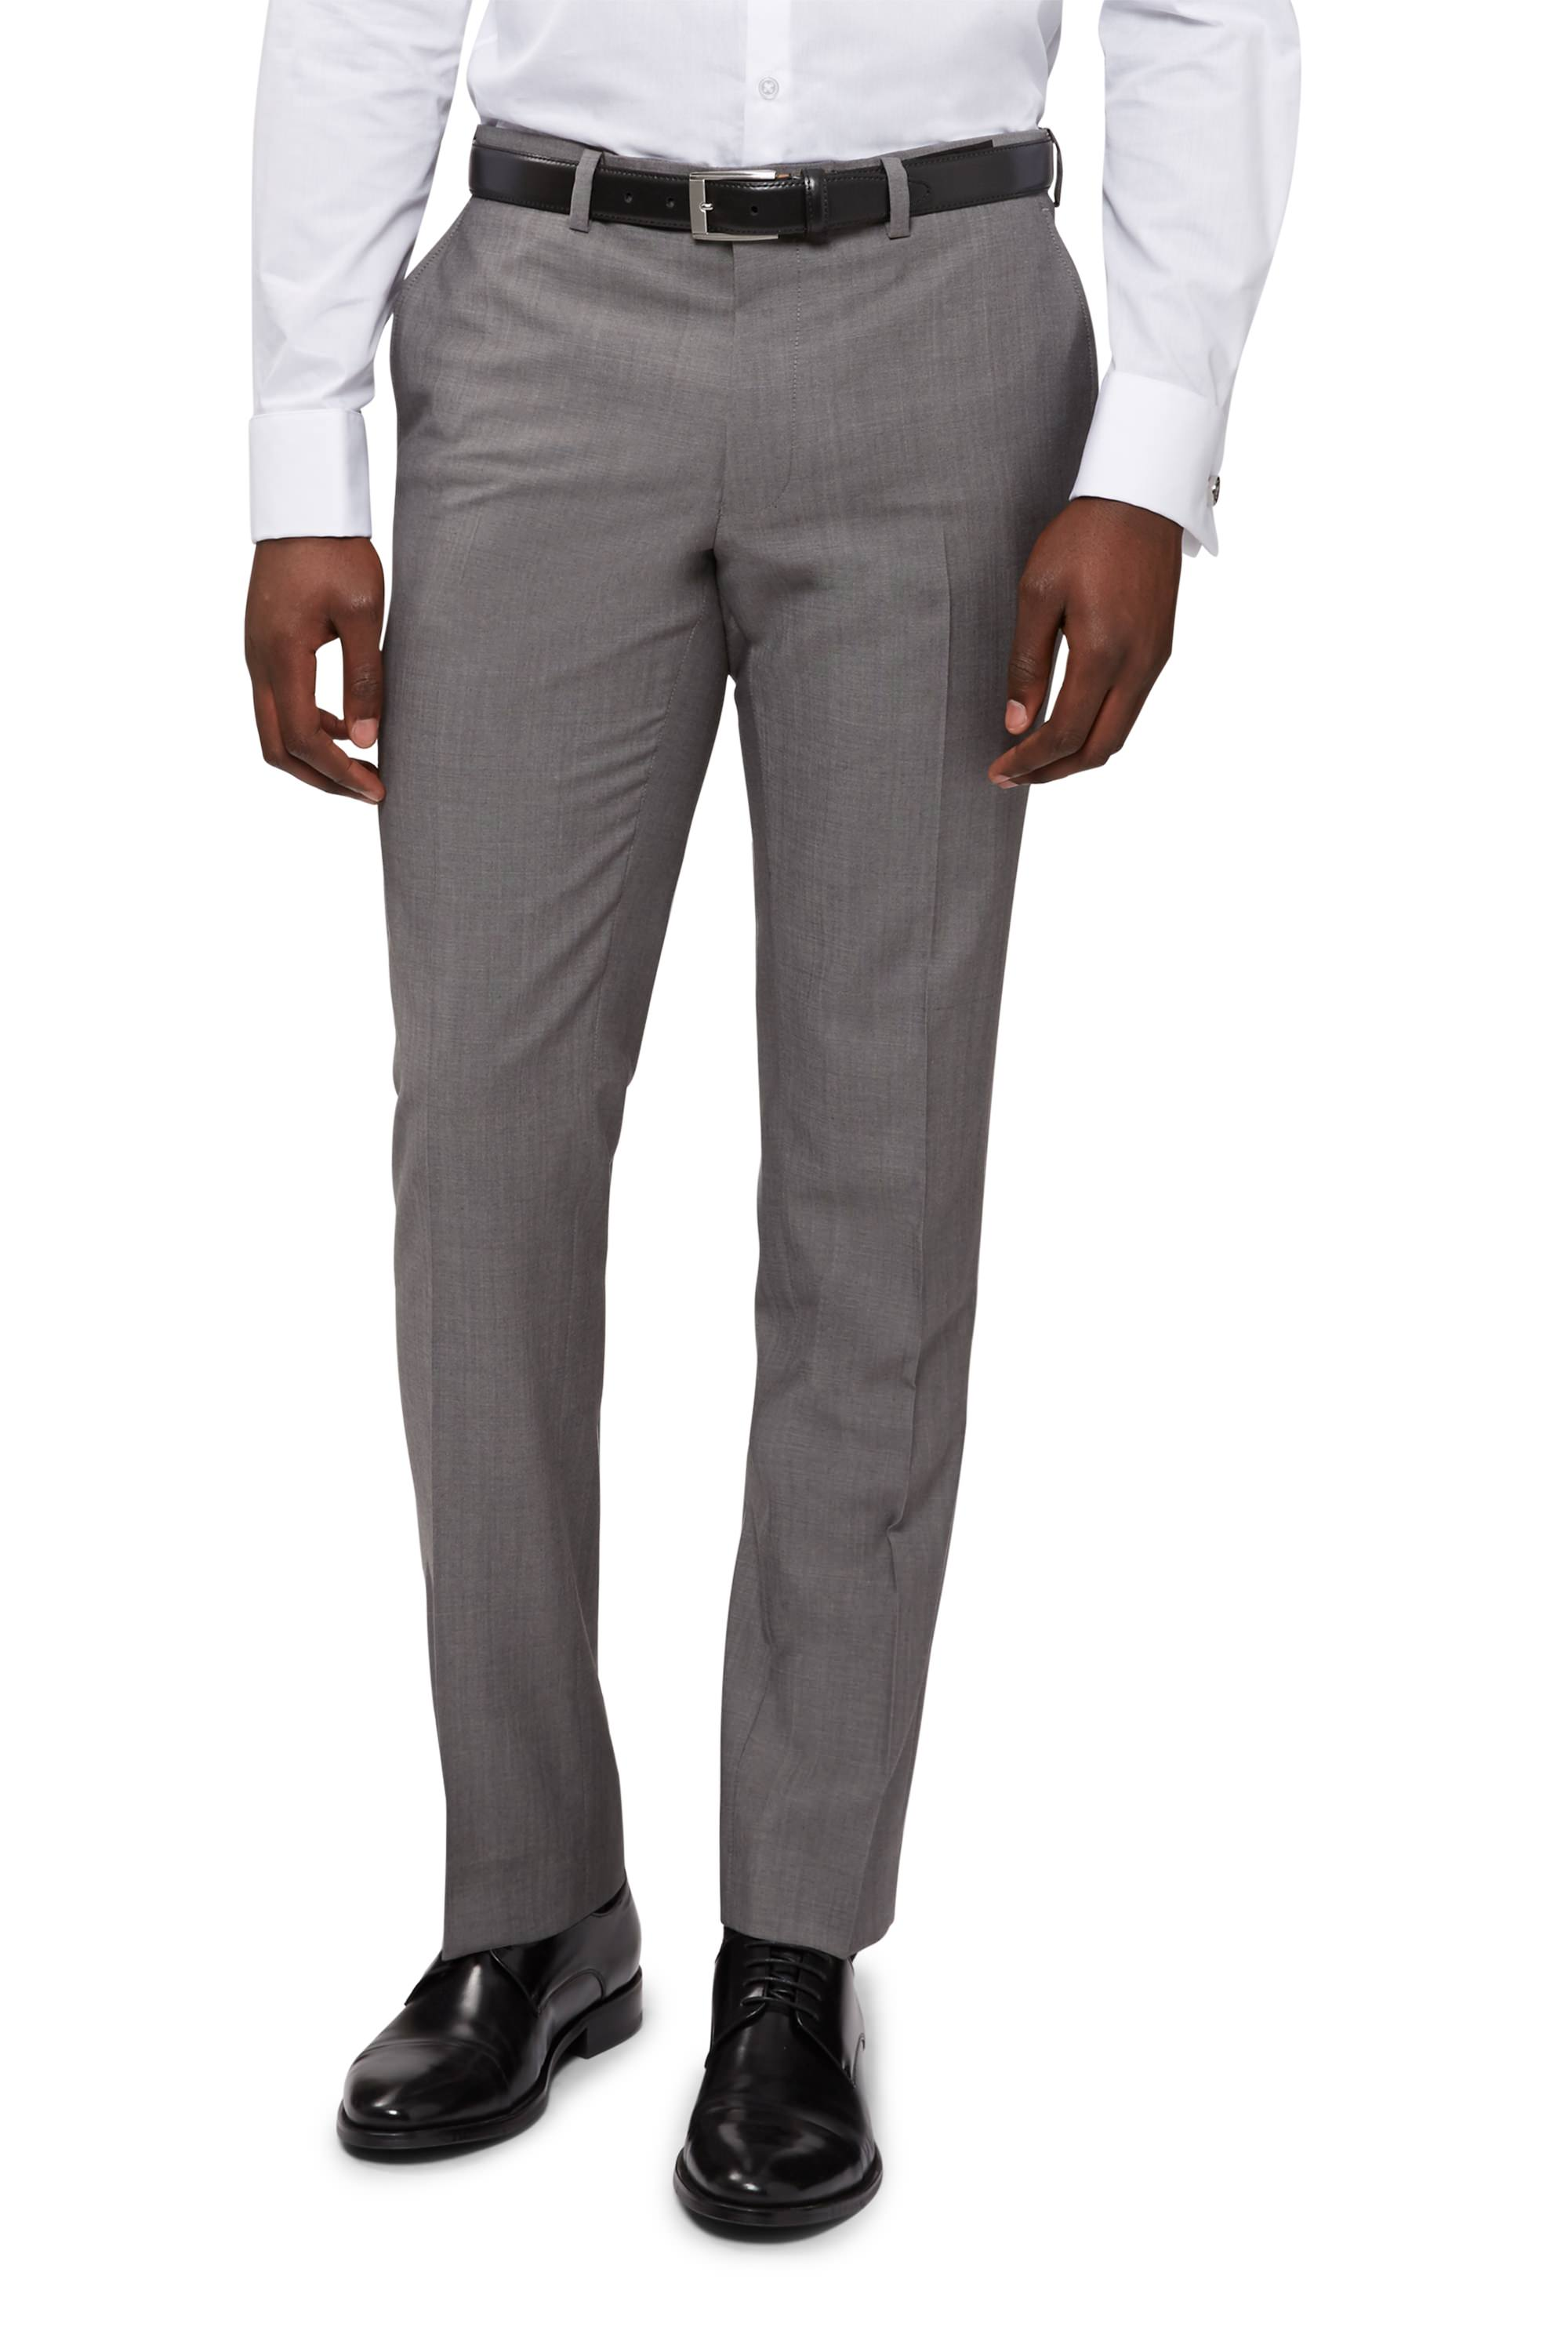 Men's suit pants made with a polyester fabric or blend are a durable, wrinkle-resistant option, which means no ironing. Polyester is a flexible material that's resistant to shrinking, as well. The fibers are strong and long lasting, so you can wear the pants for years to come.